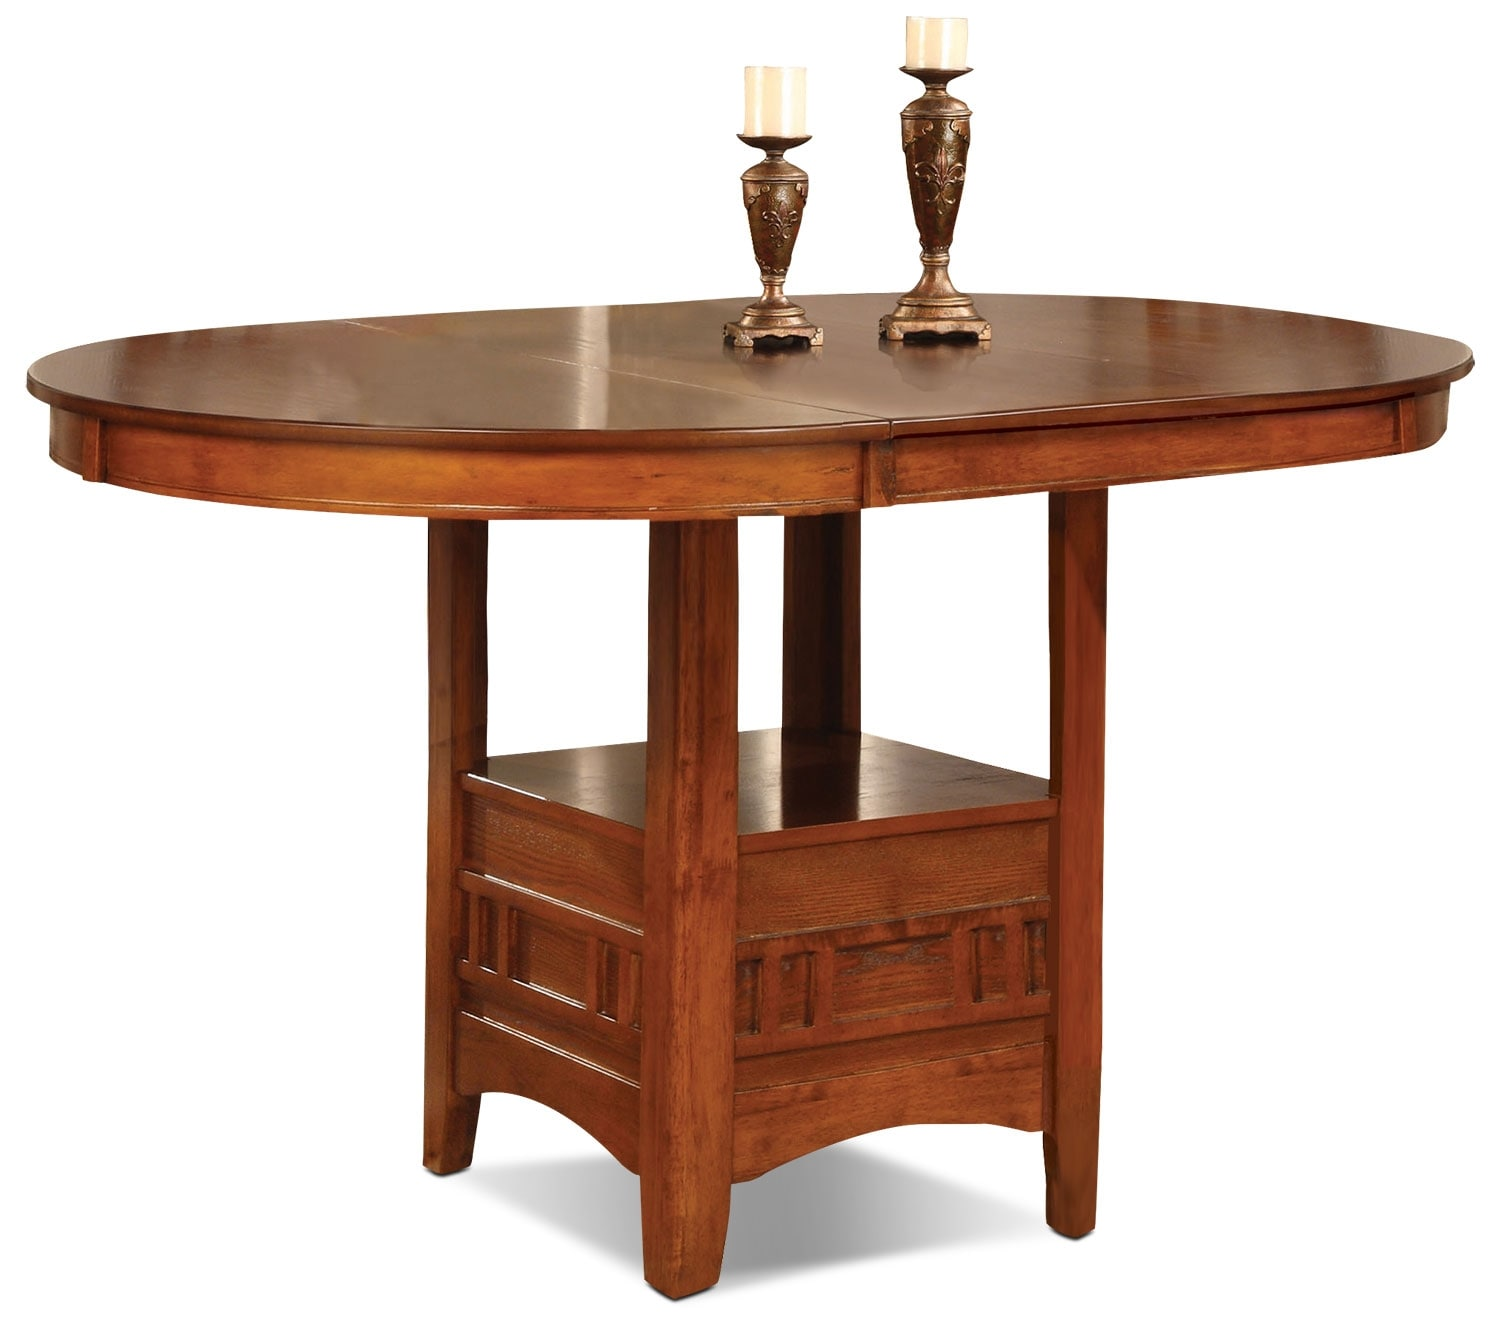 Dalton Oak Counter Height Table United Furniture Warehouse : 380267 from www.ufw.com size 1500 x 1325 jpeg 285kB